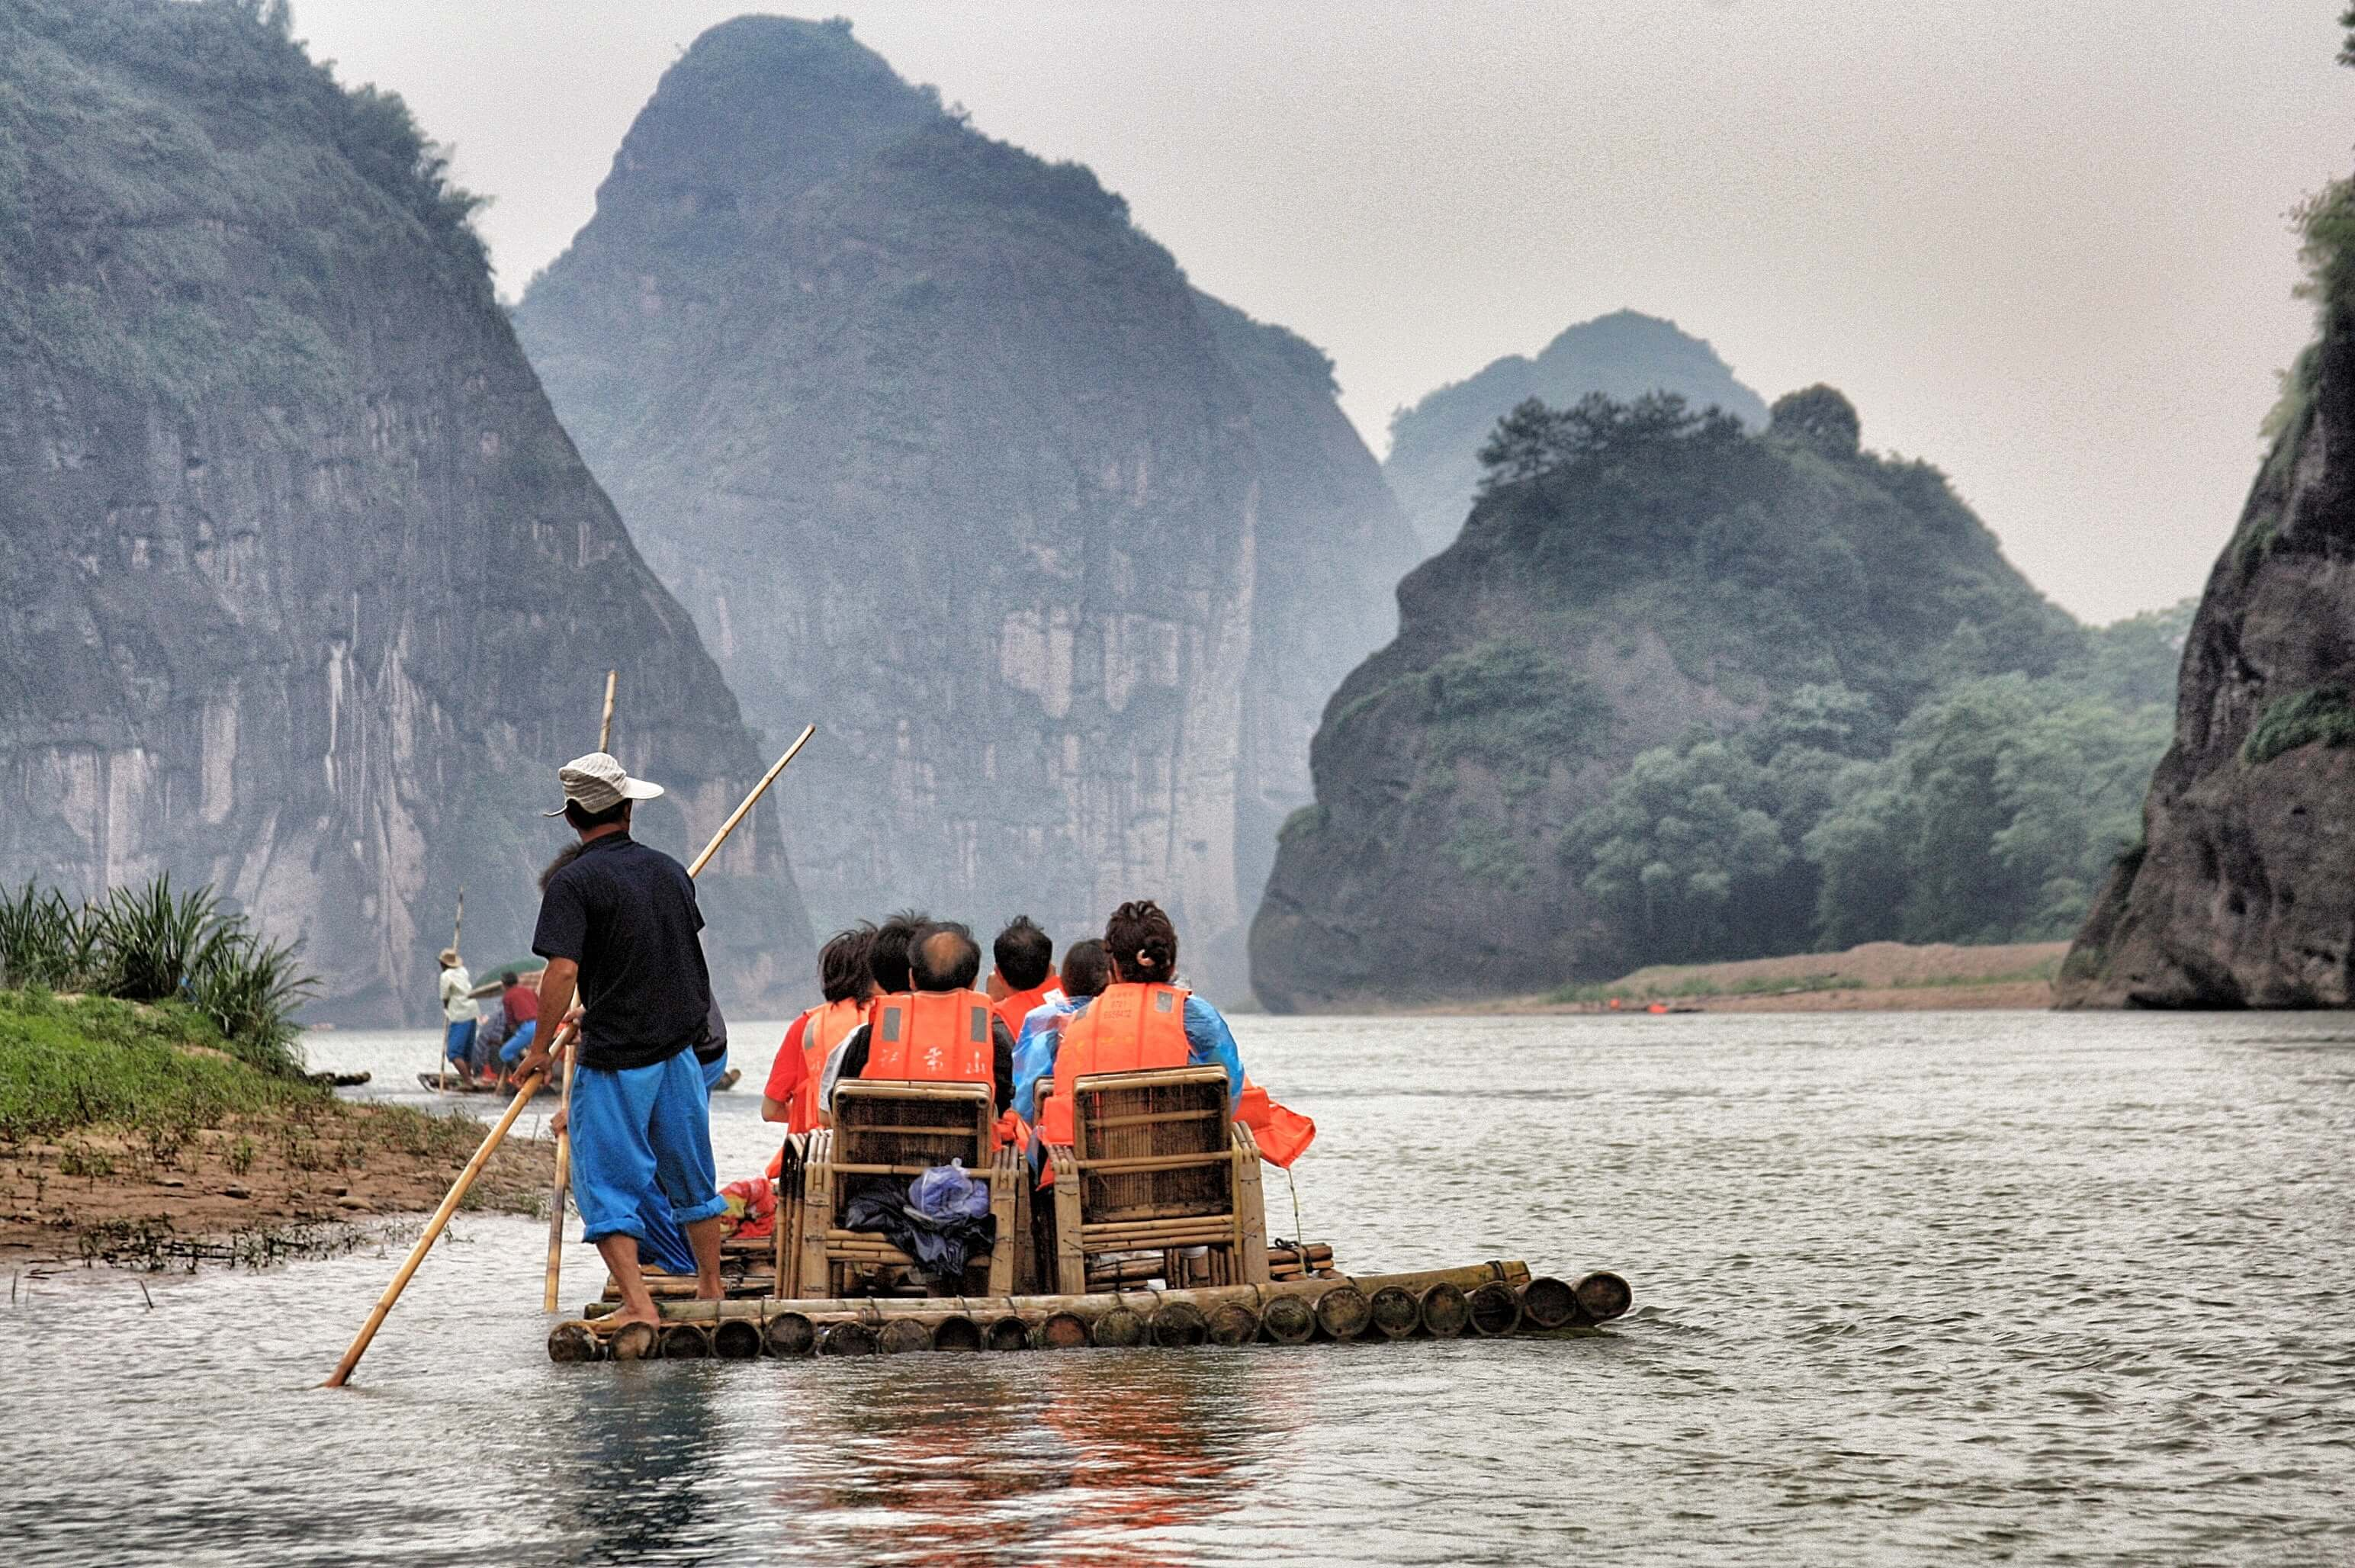 A boat ride in Vietnam